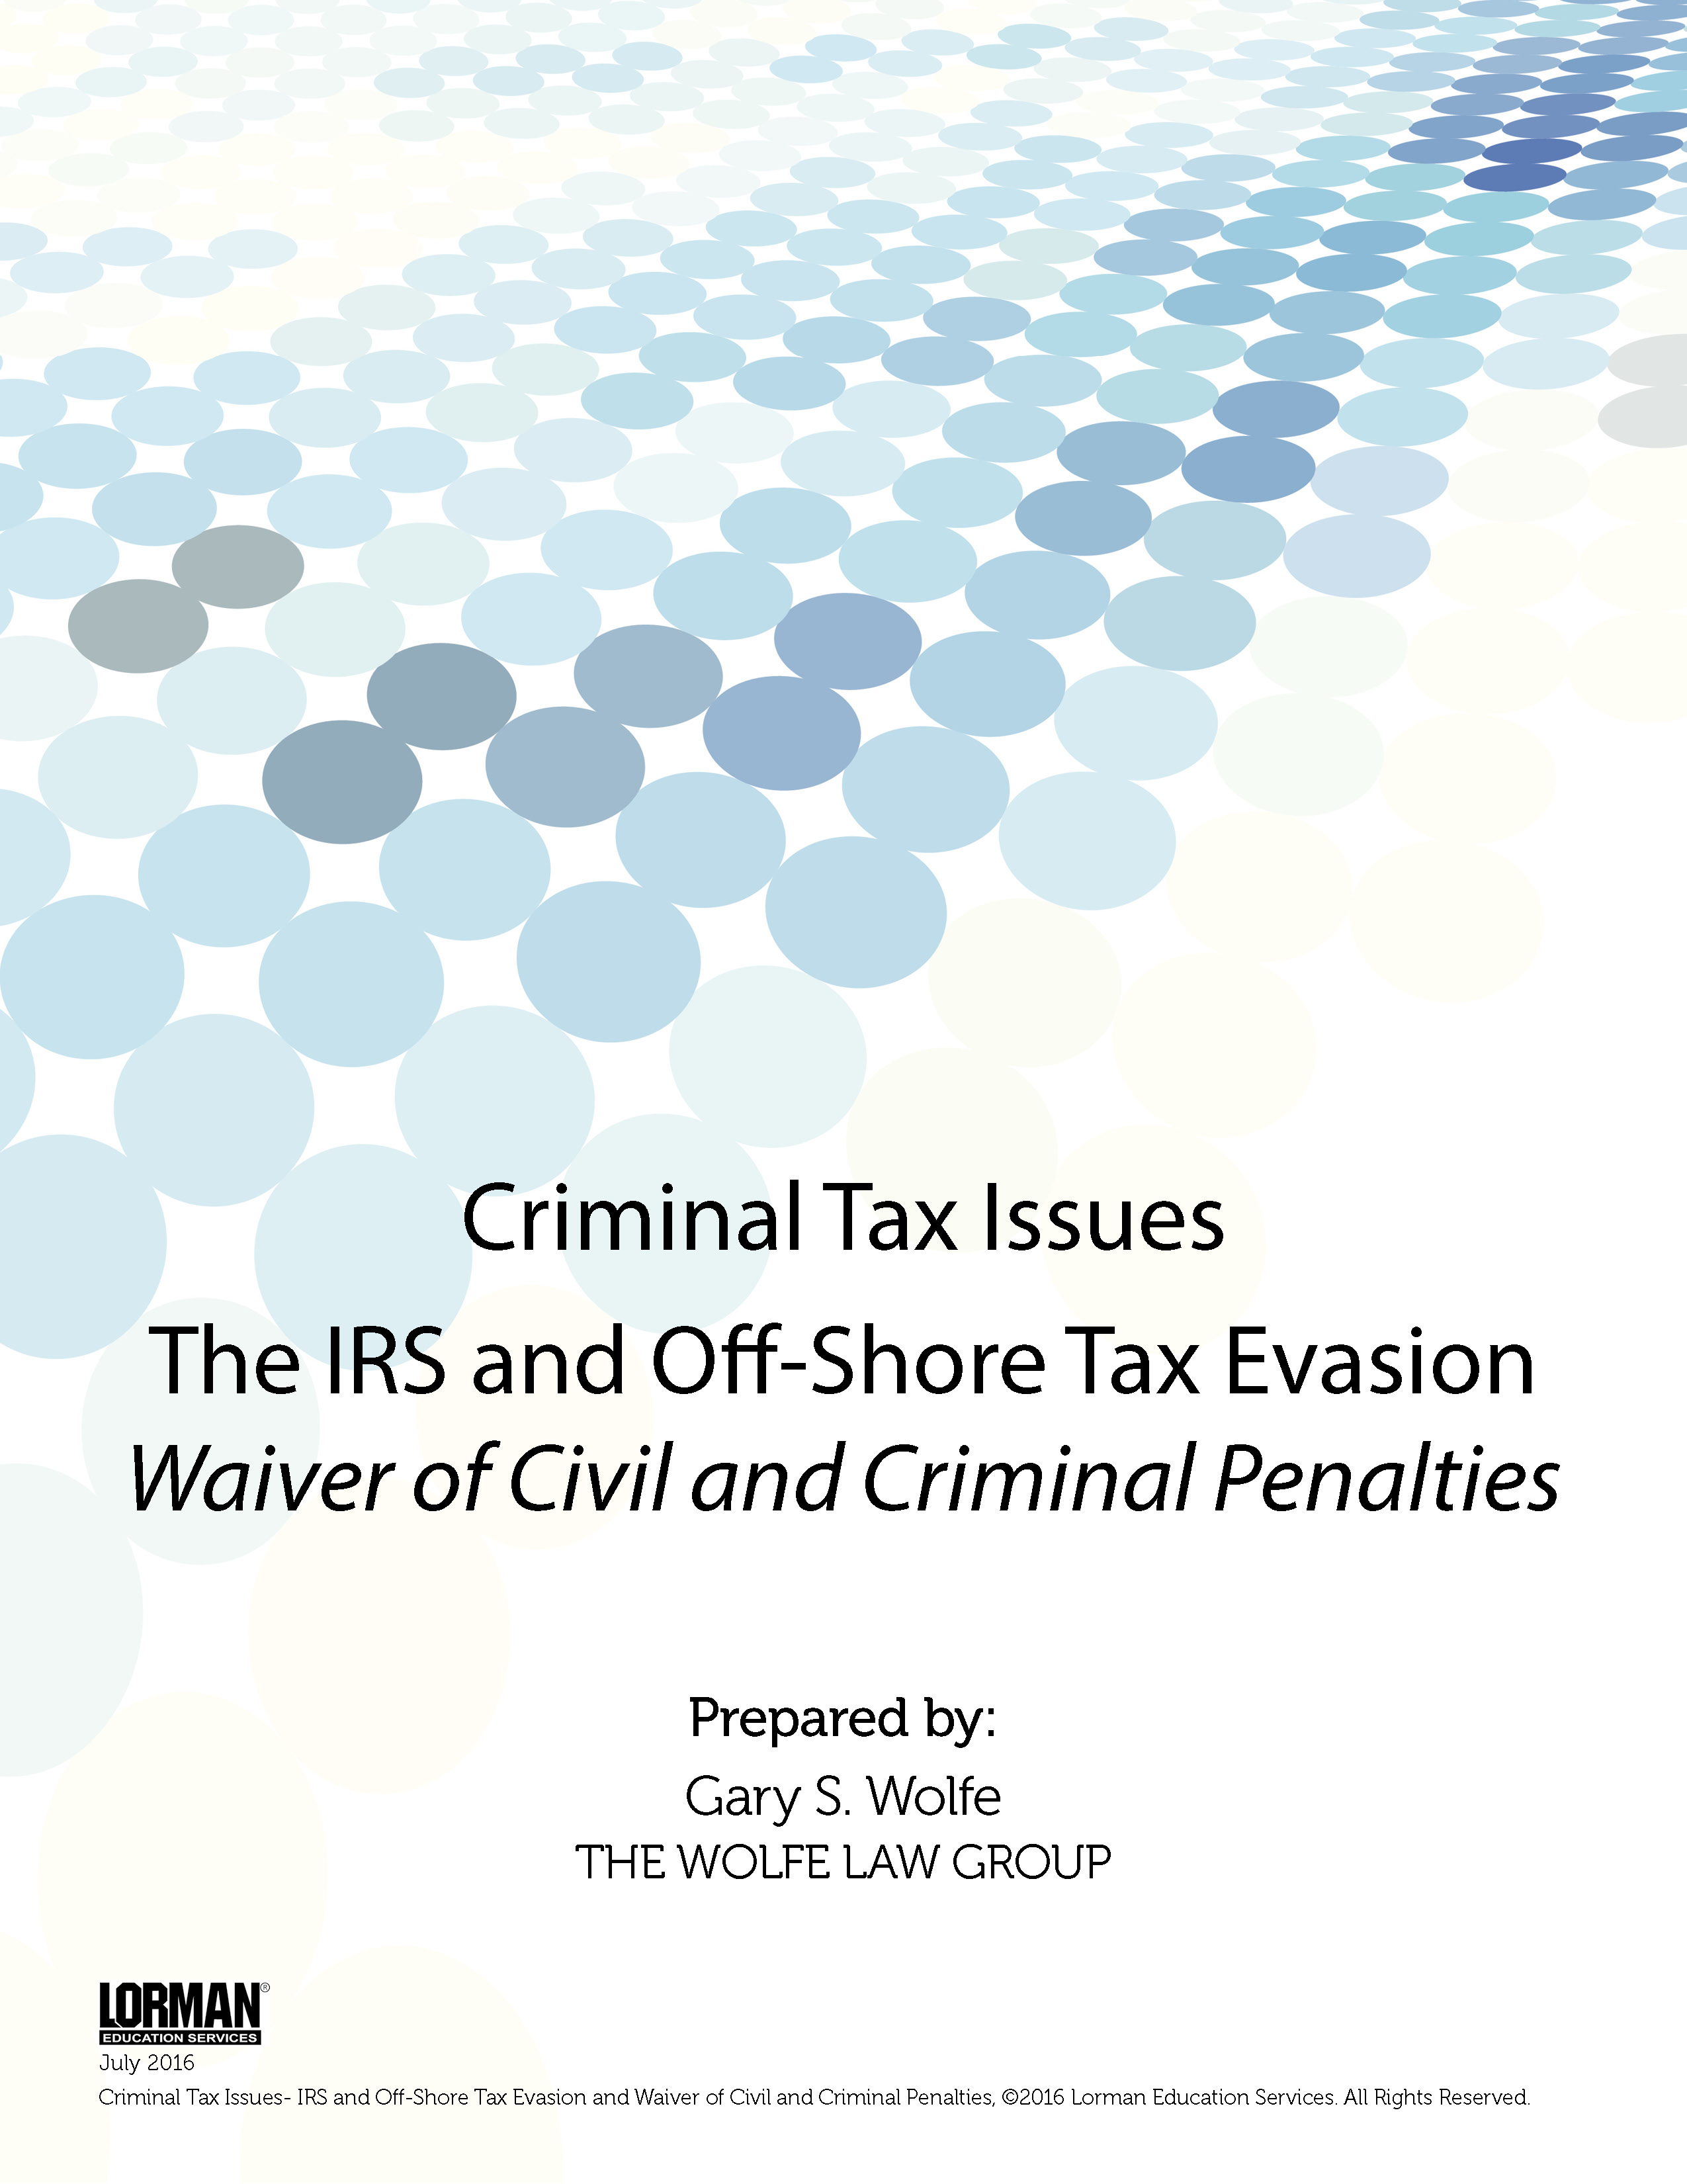 Criminal Tax Issues- IRS and Off-Shore Tax Evasion and Waiver of Civil and Criminal Penalties